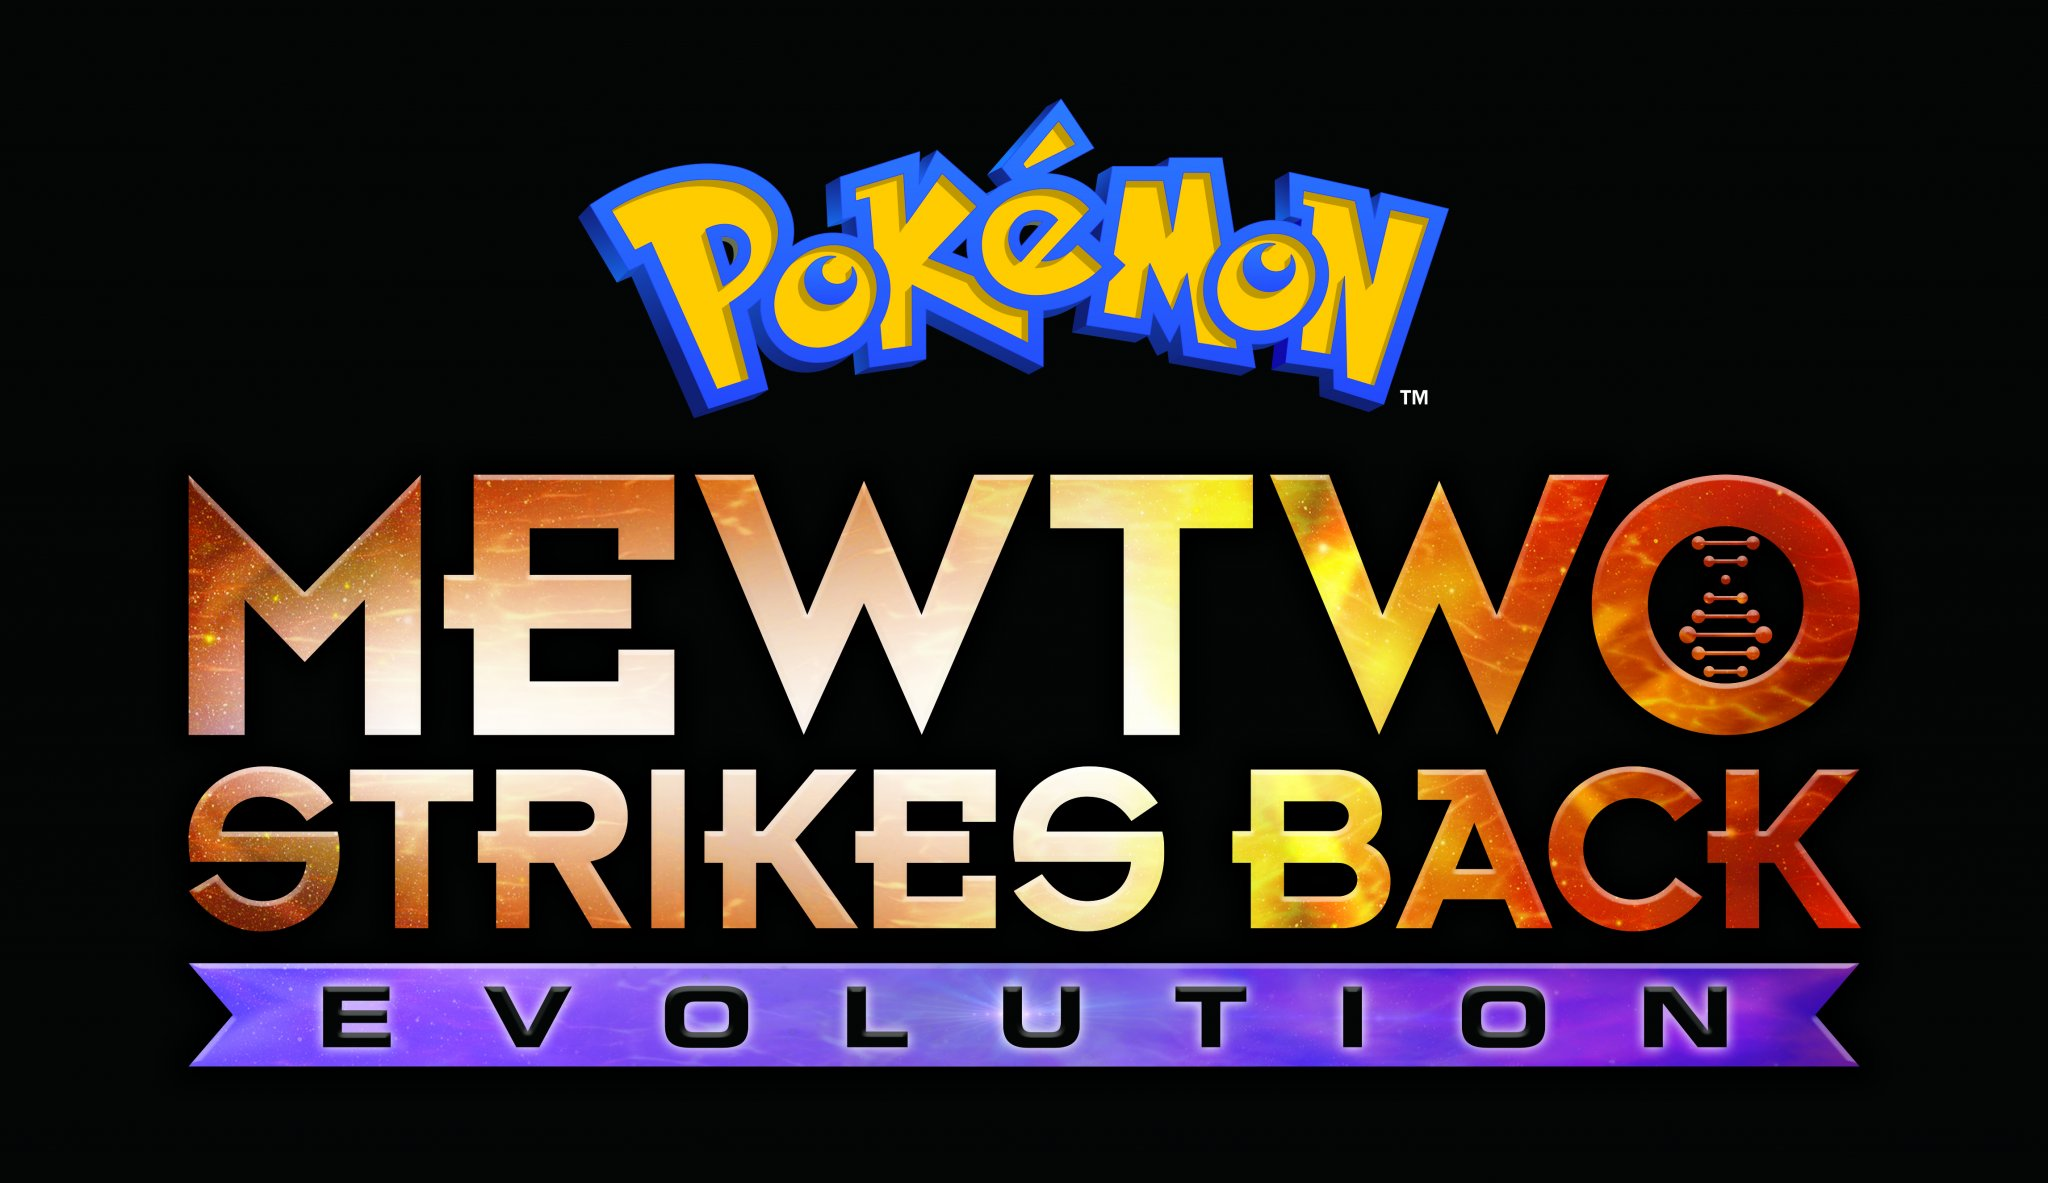 Pokémon Mewtwo Strikes Back: Evolution (2019)